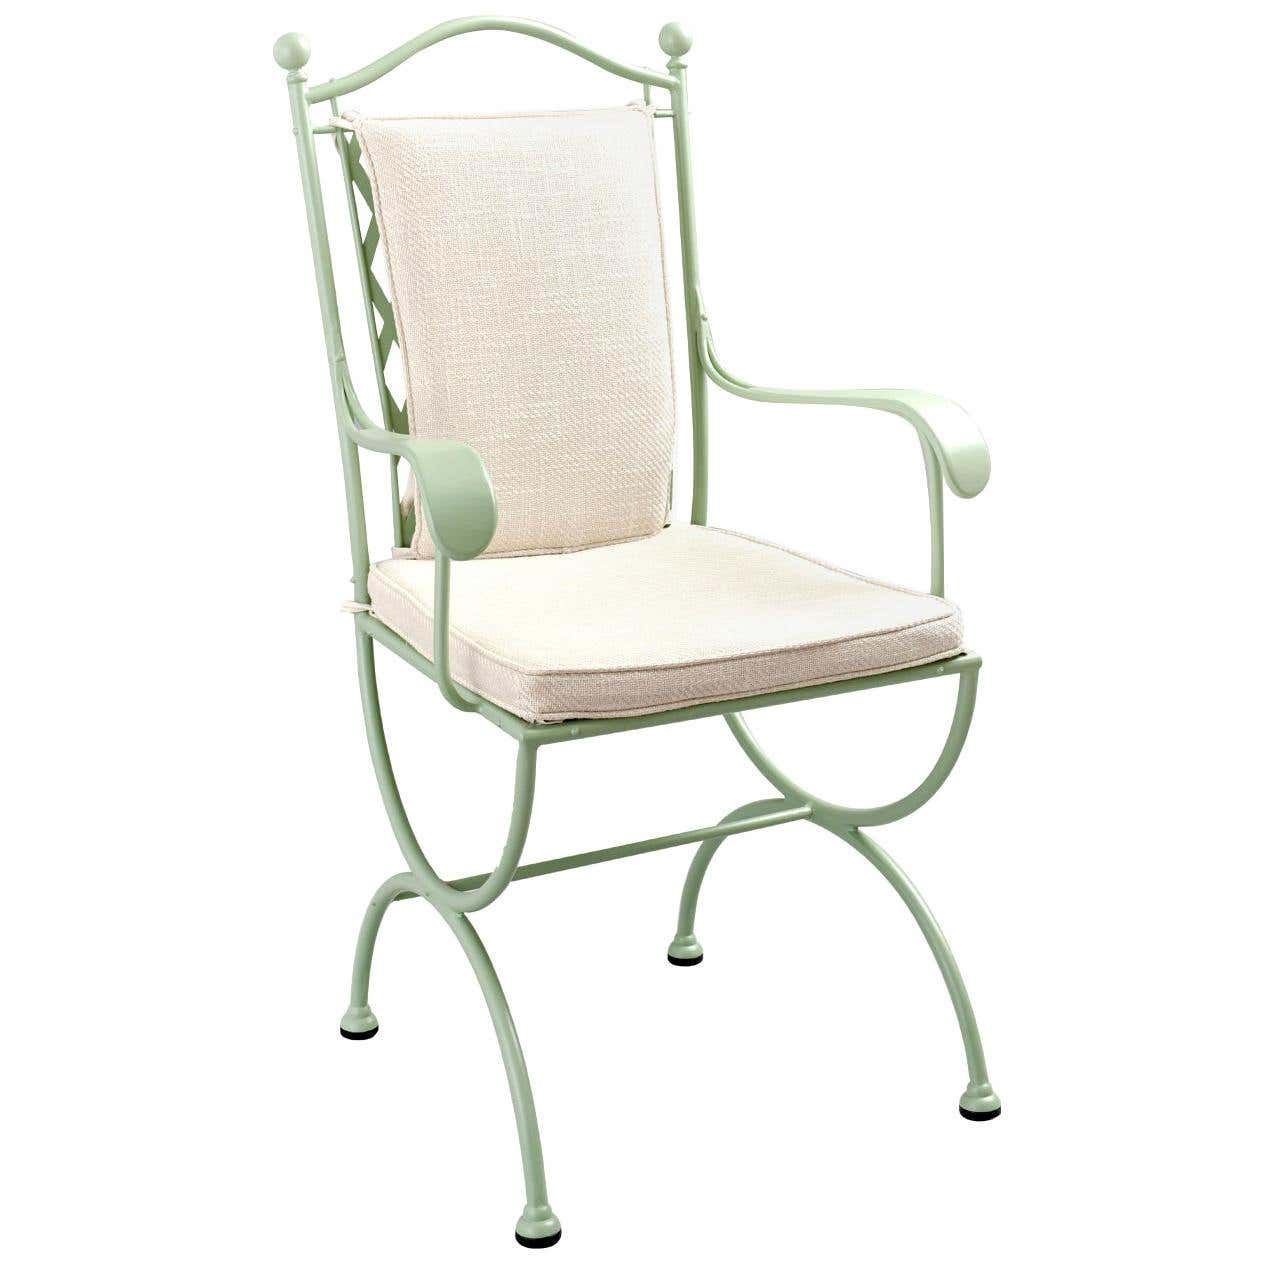 rombo outdoor green wrought iron chair with armrests